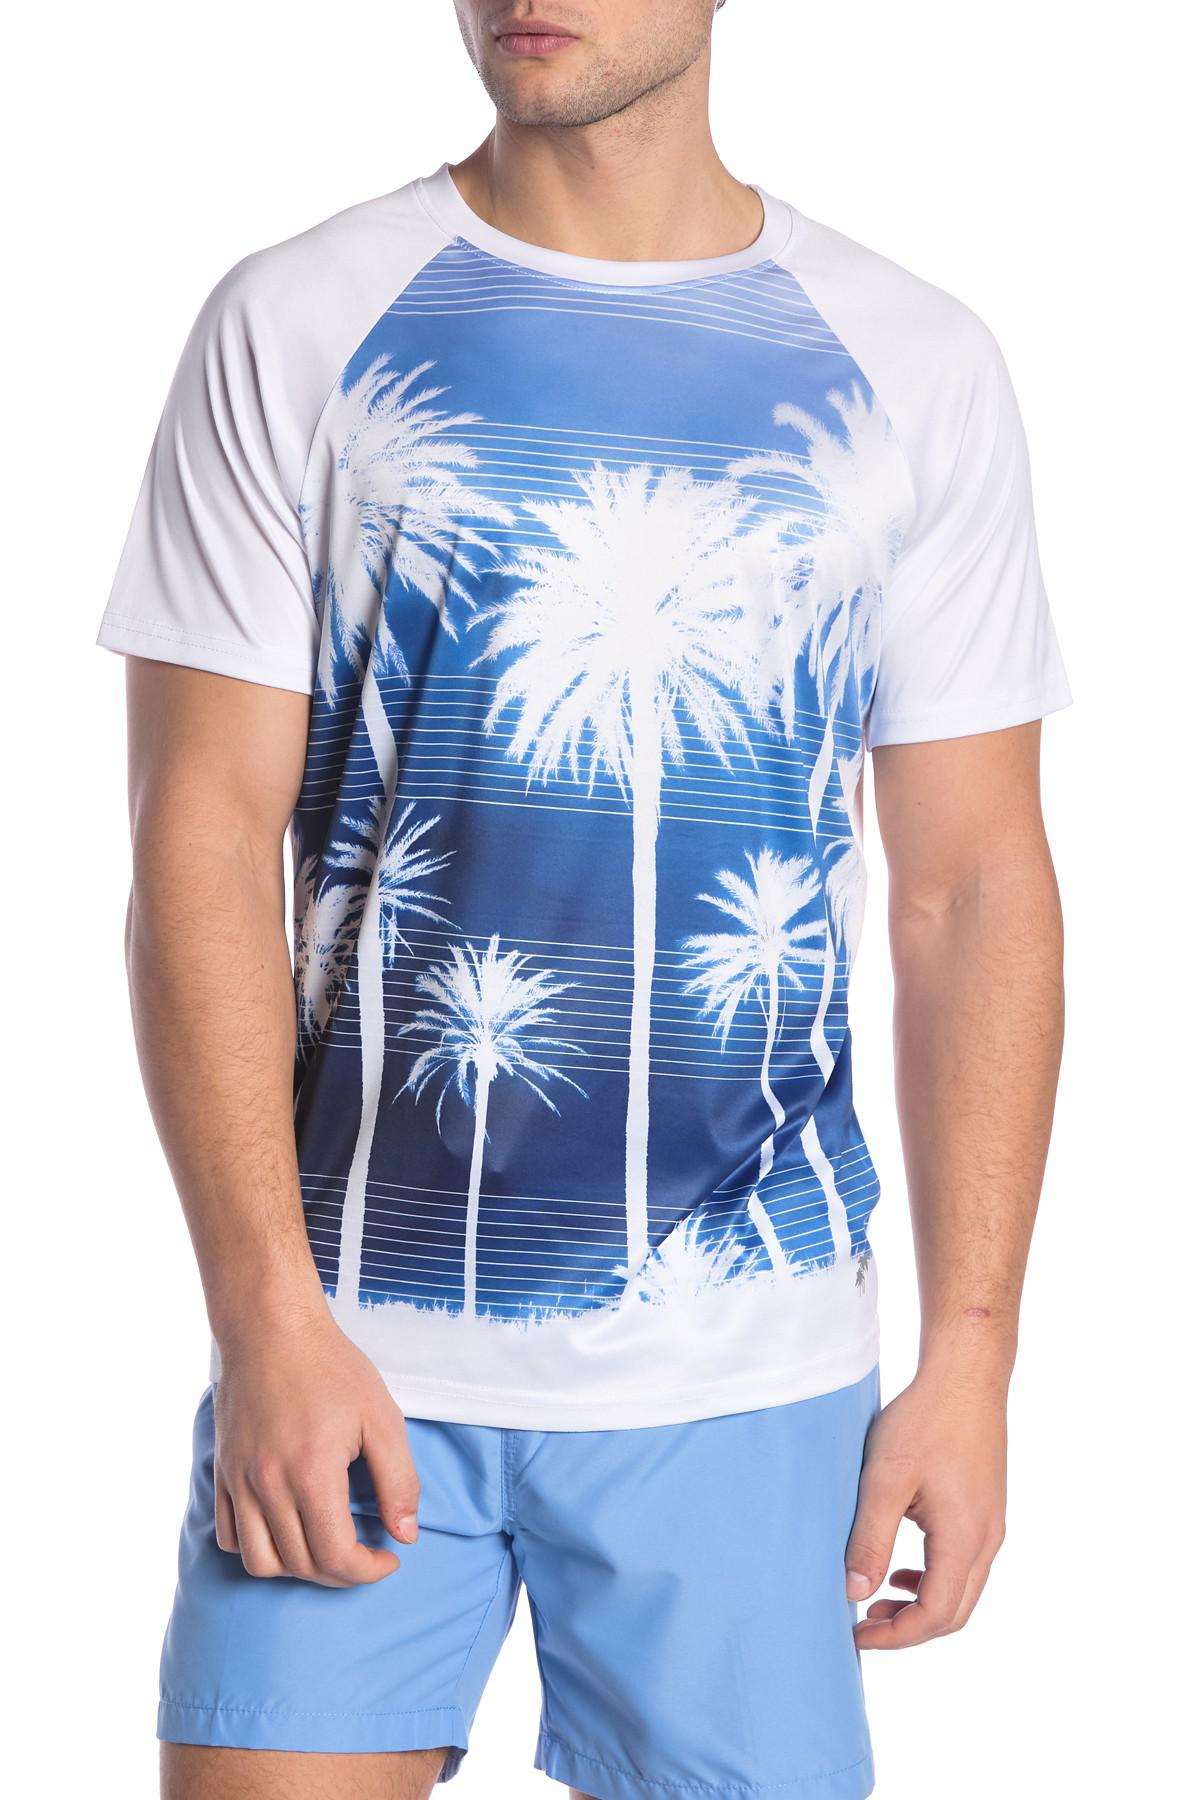 d3eed67a9dec8 Lyst - Trunks Surf And Swim Co Placement Print Short Sleeve Swim Tee ...